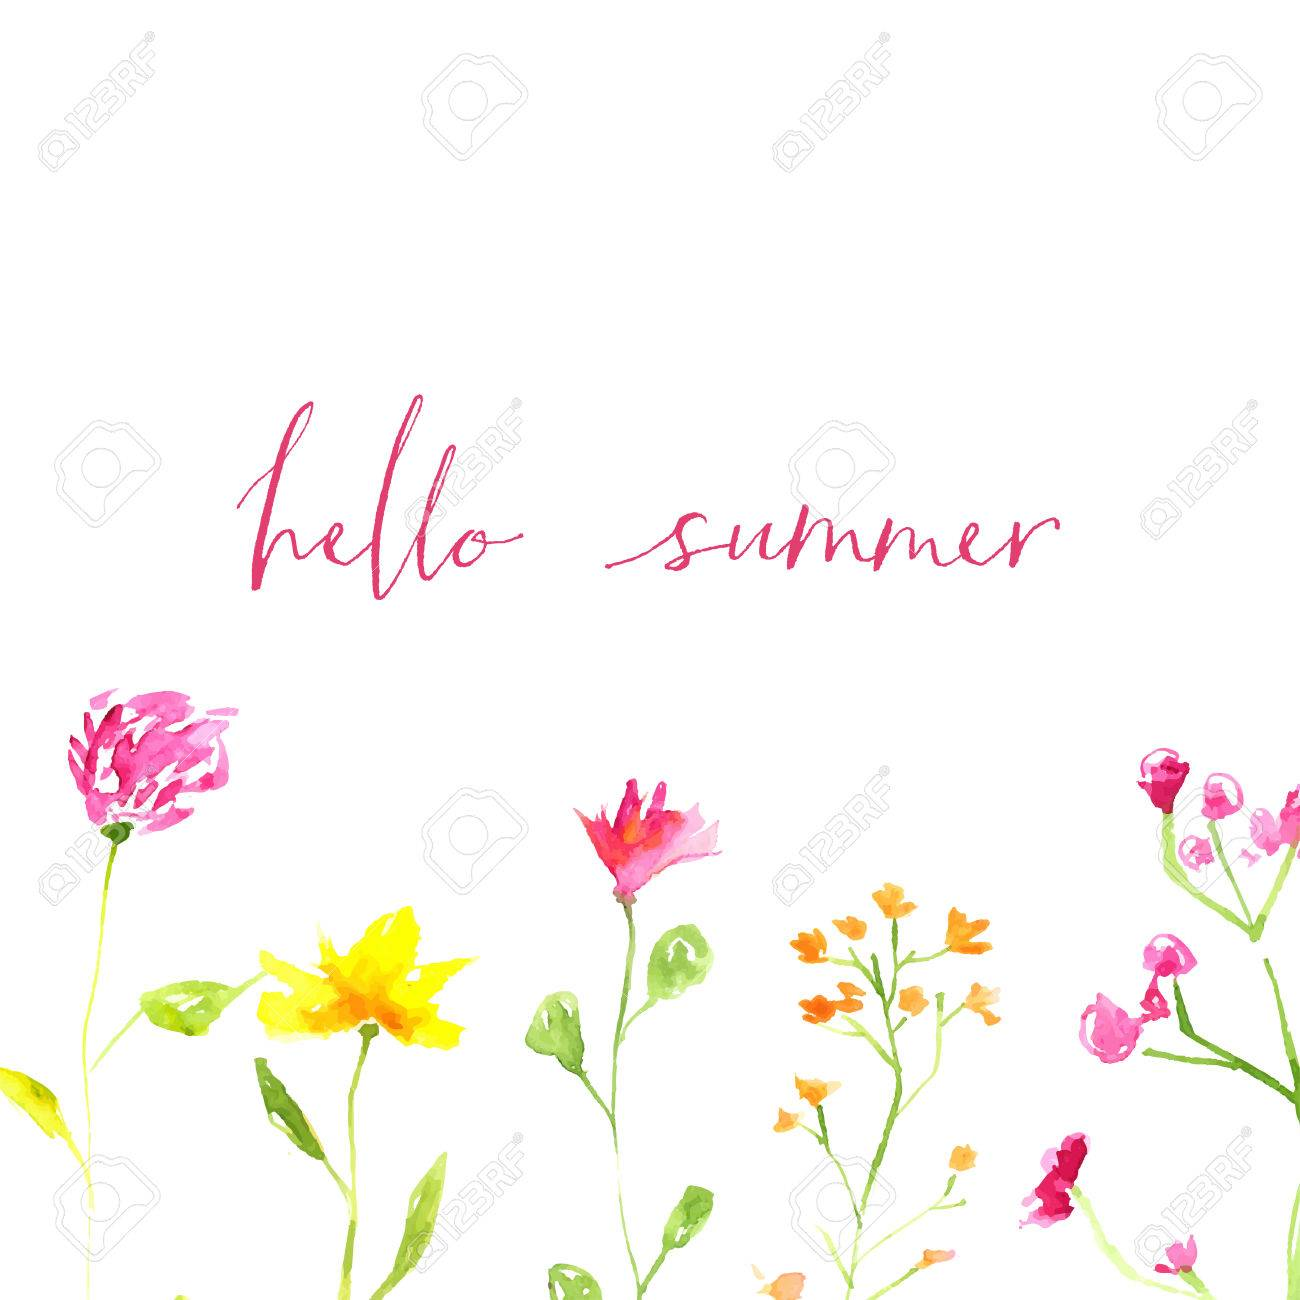 Attirant Hello Summer Text With Hand Painted Watercolor Wild Flowers And Leaves.  Stock Vector   42520874